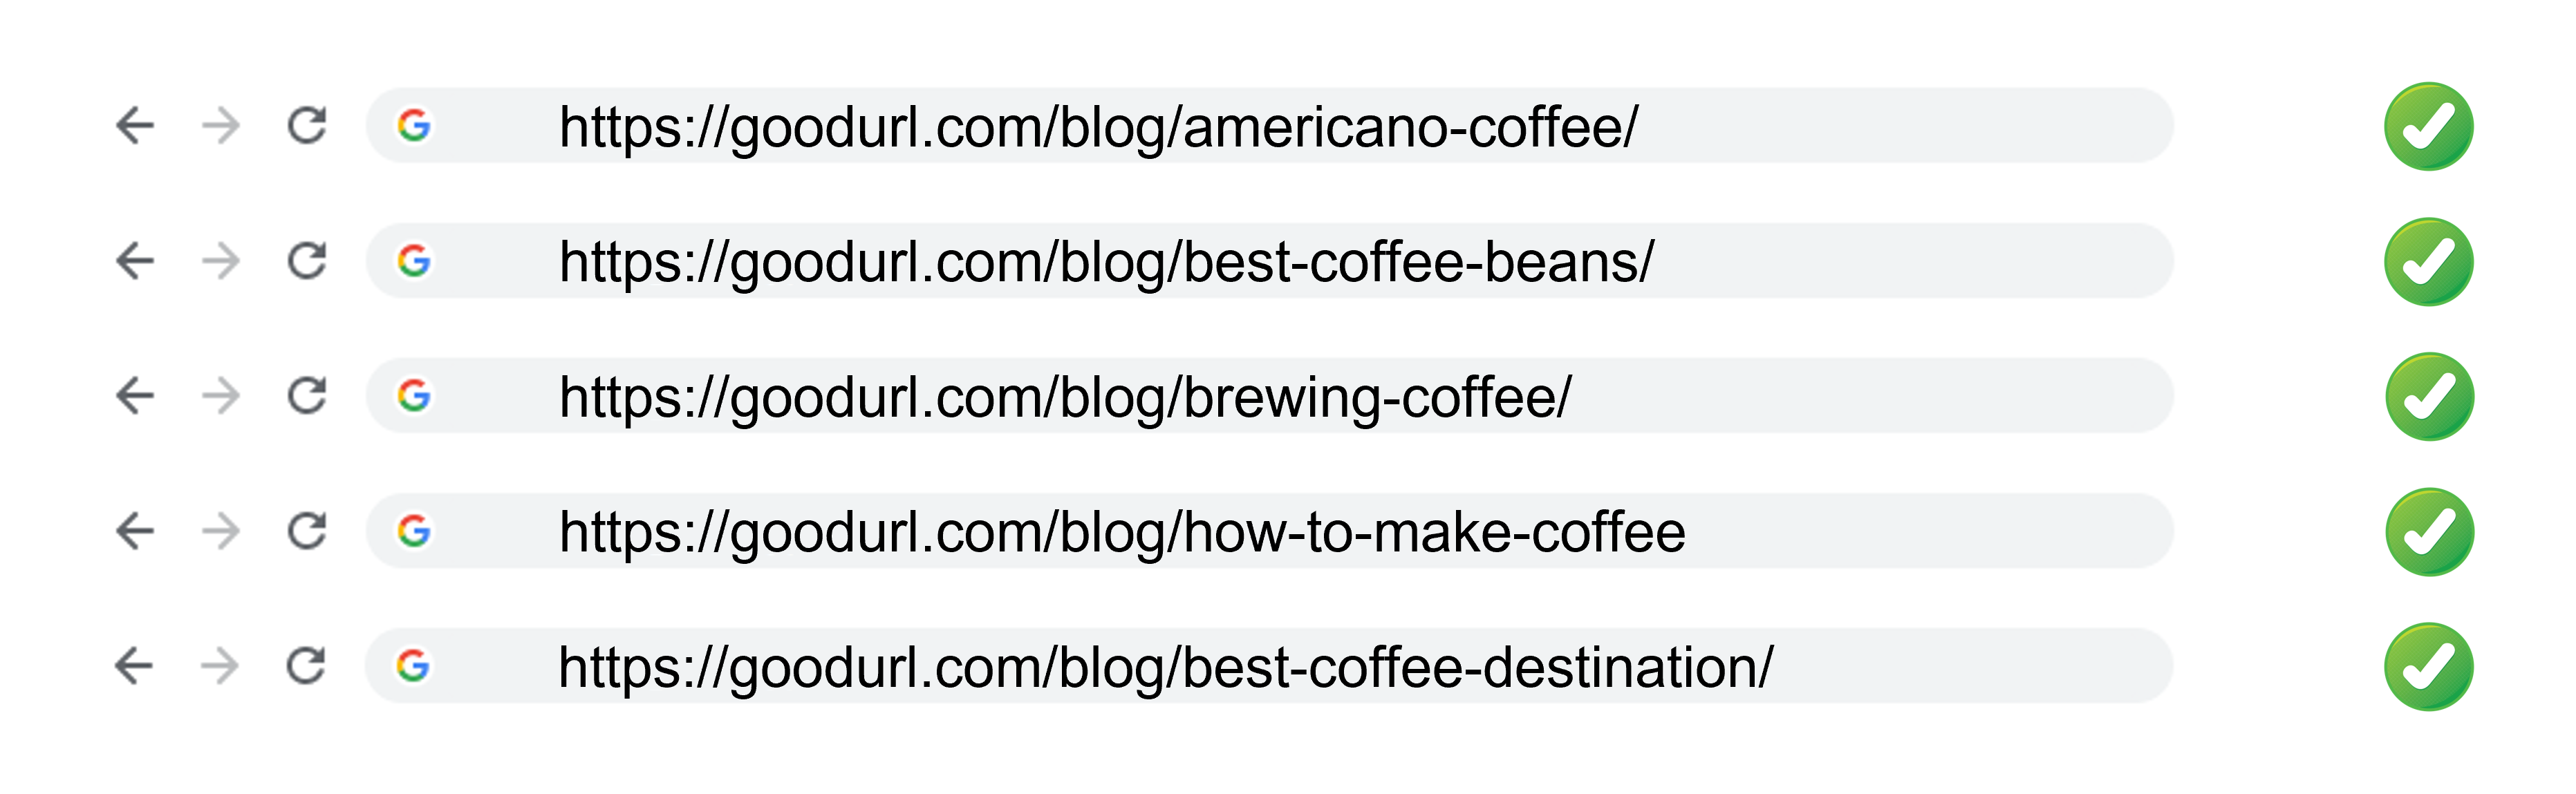 good example of url structure for blog seo